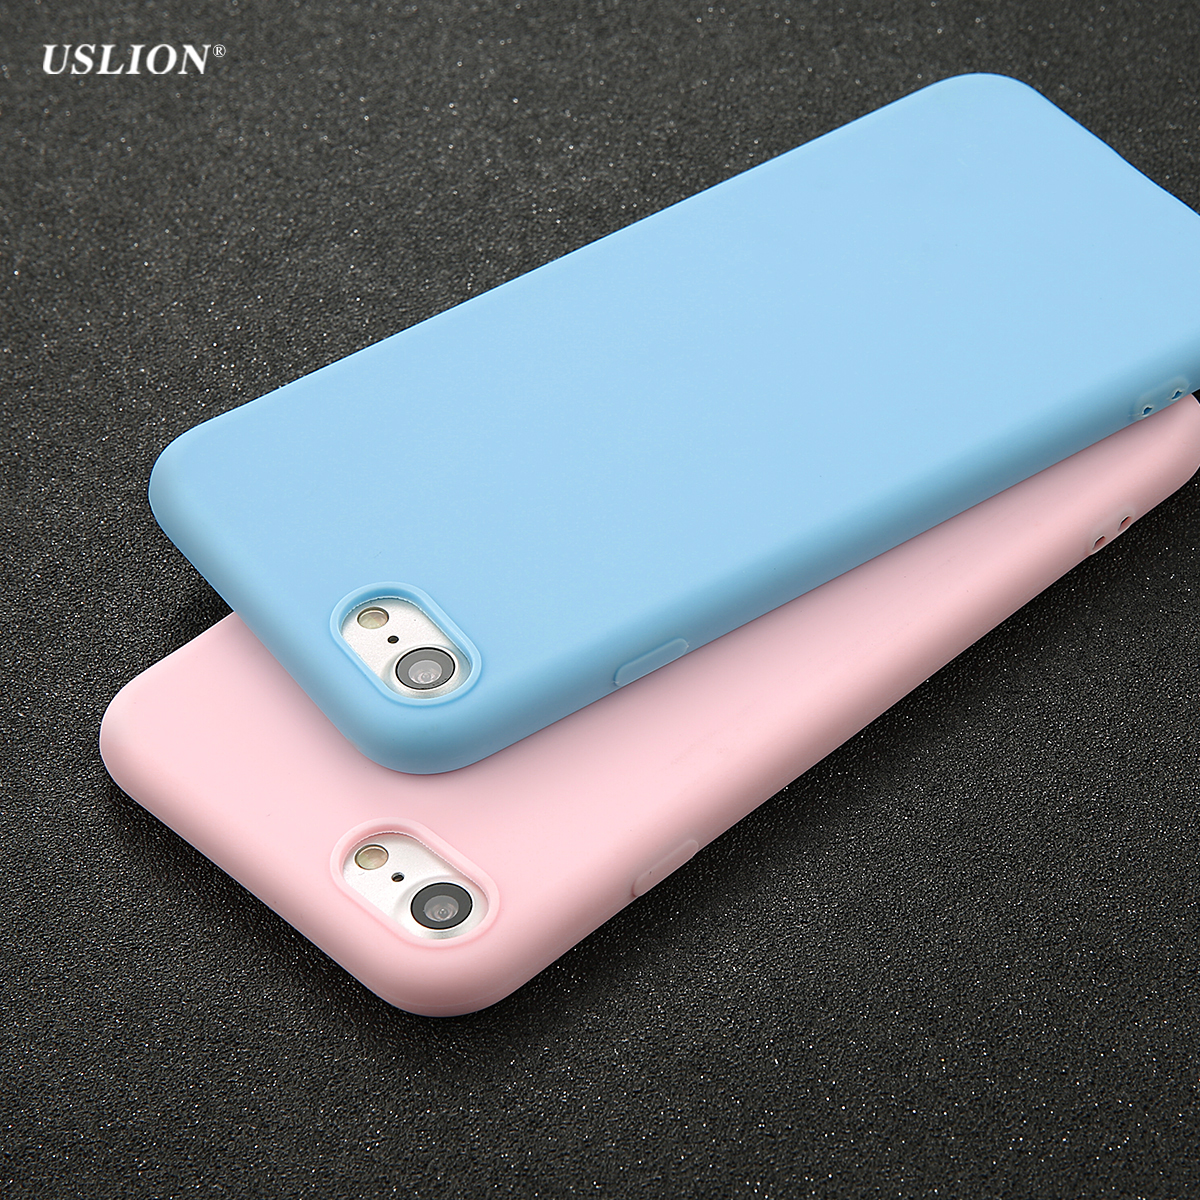 USLION Phone Case For iPhone 7 6 6s 8 X Plus 5 5s SE Simple Solid Color Ultrathin Soft TPU Cases Fashion Candy Color Back Cover cute marshmallow style silicone back case for iphone 5 5s yellow white